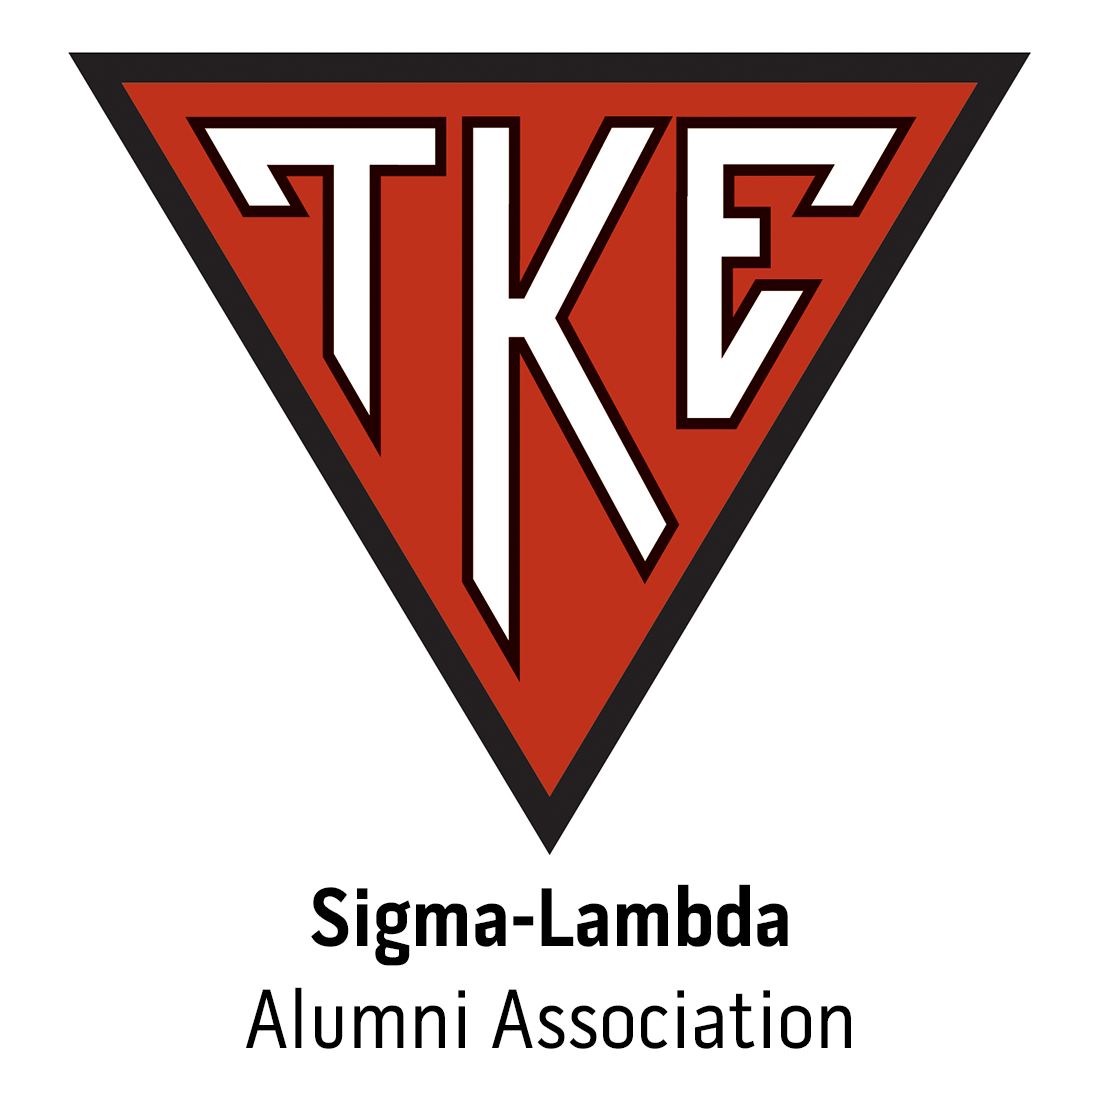 Sigma-Lambda Alumni Association at Northeastern State University